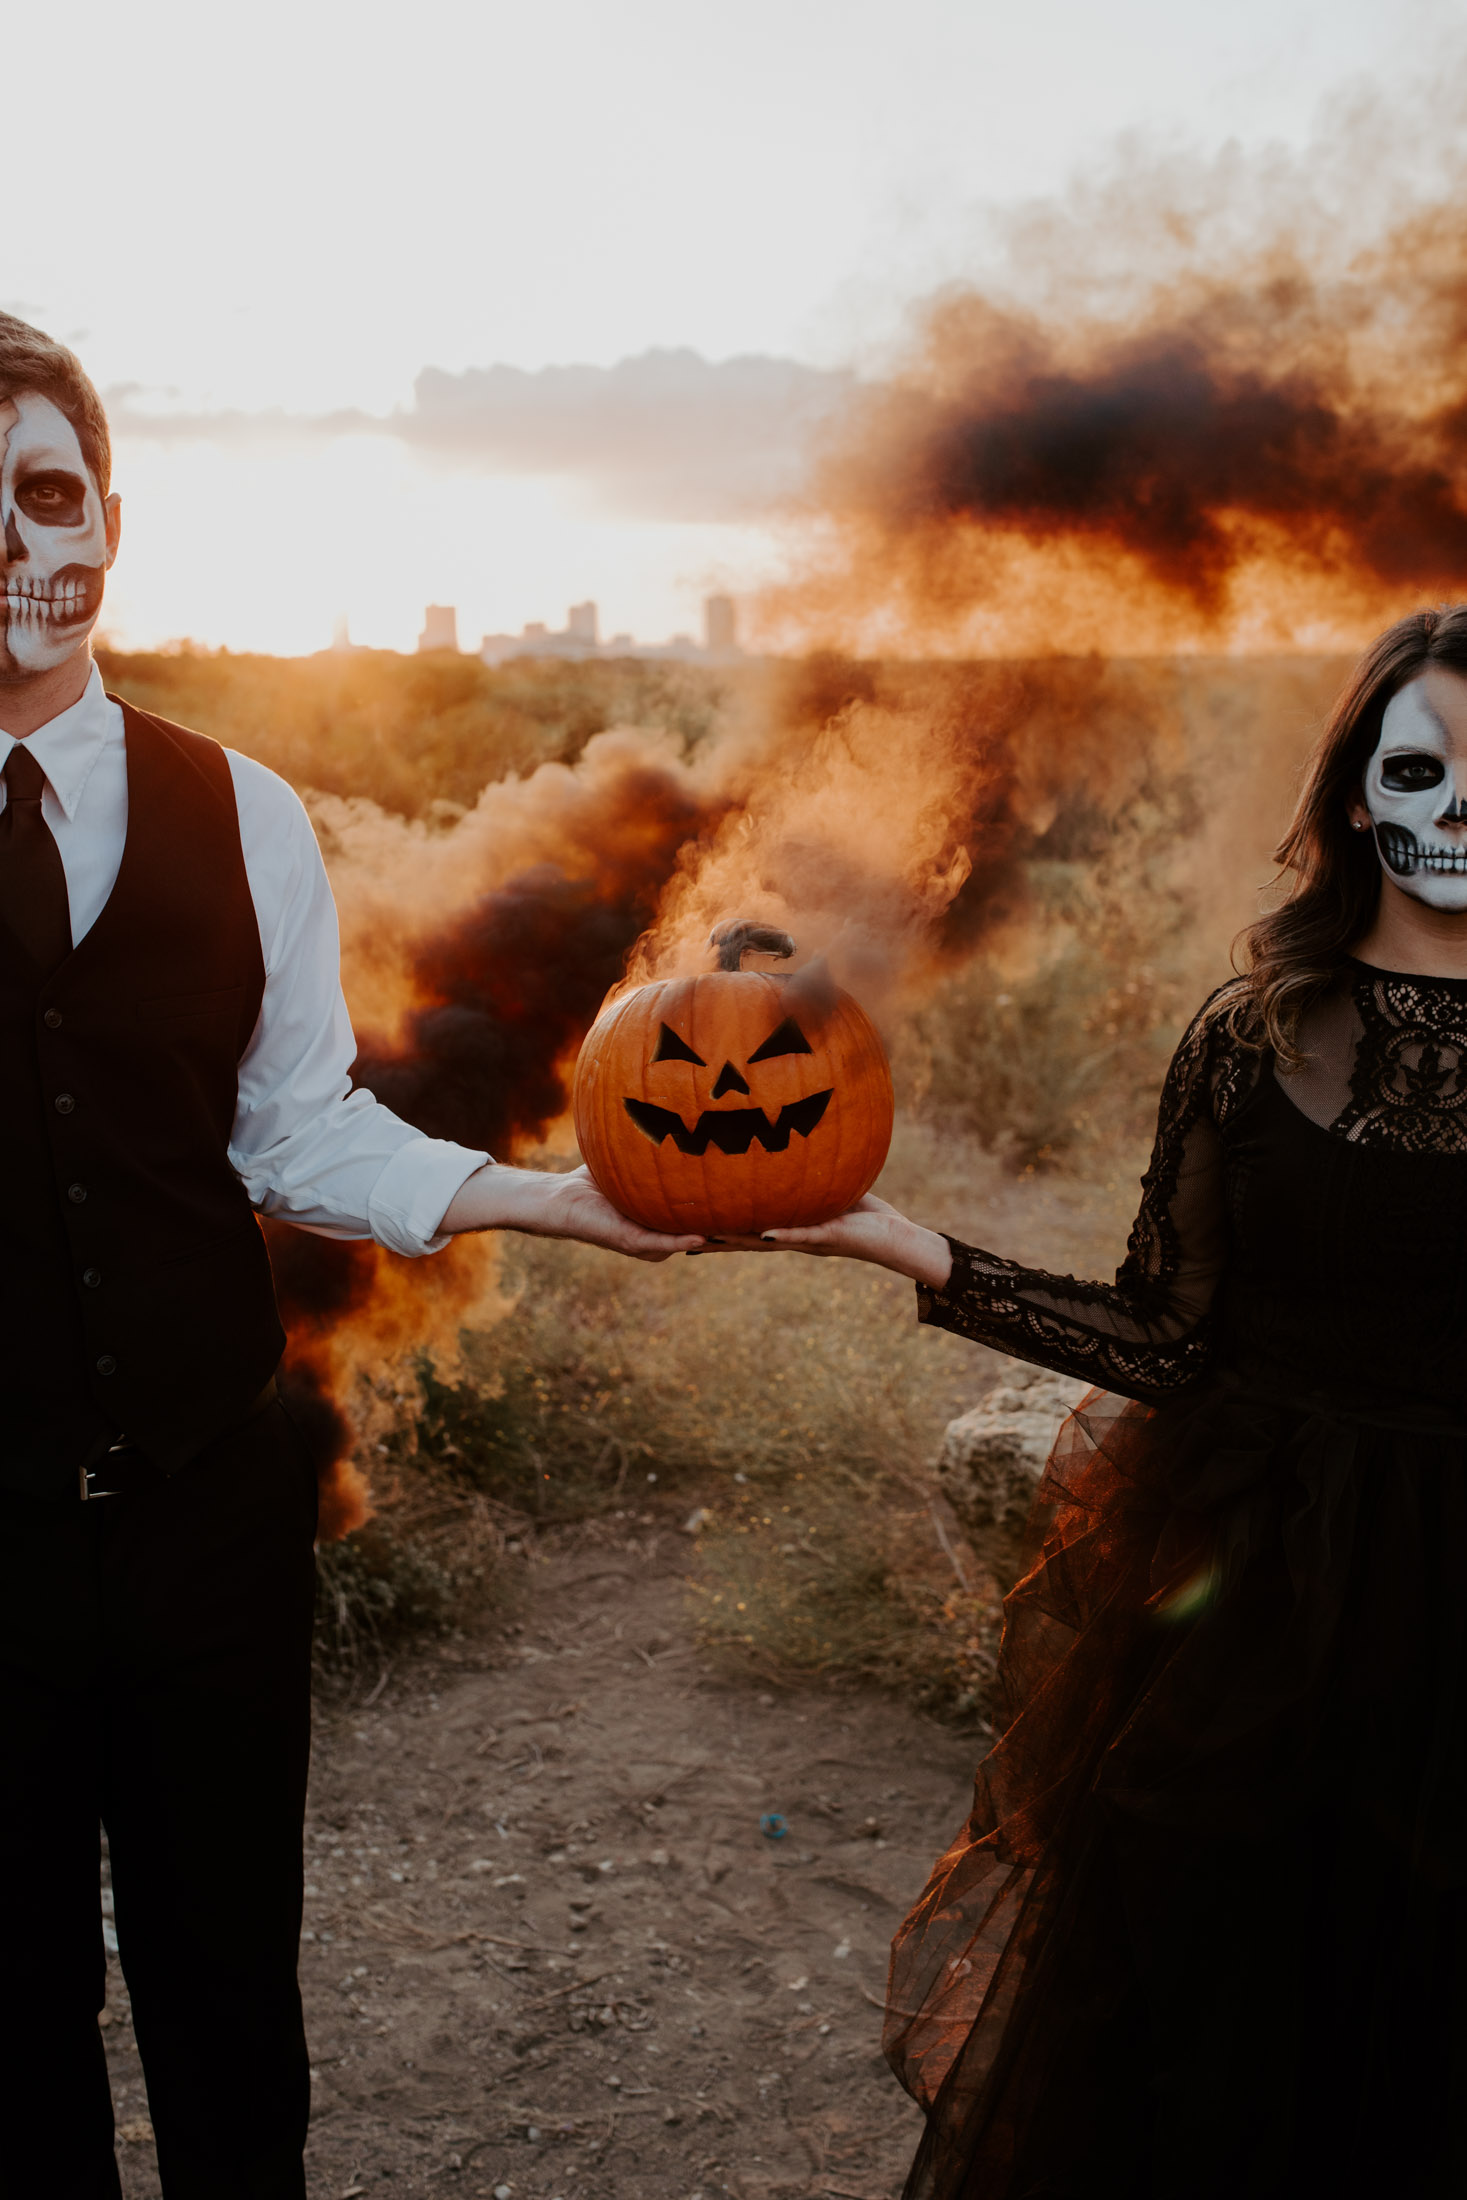 couple wearing skeleton makeup holding a jack-o-lantern with a smoke bomb inside